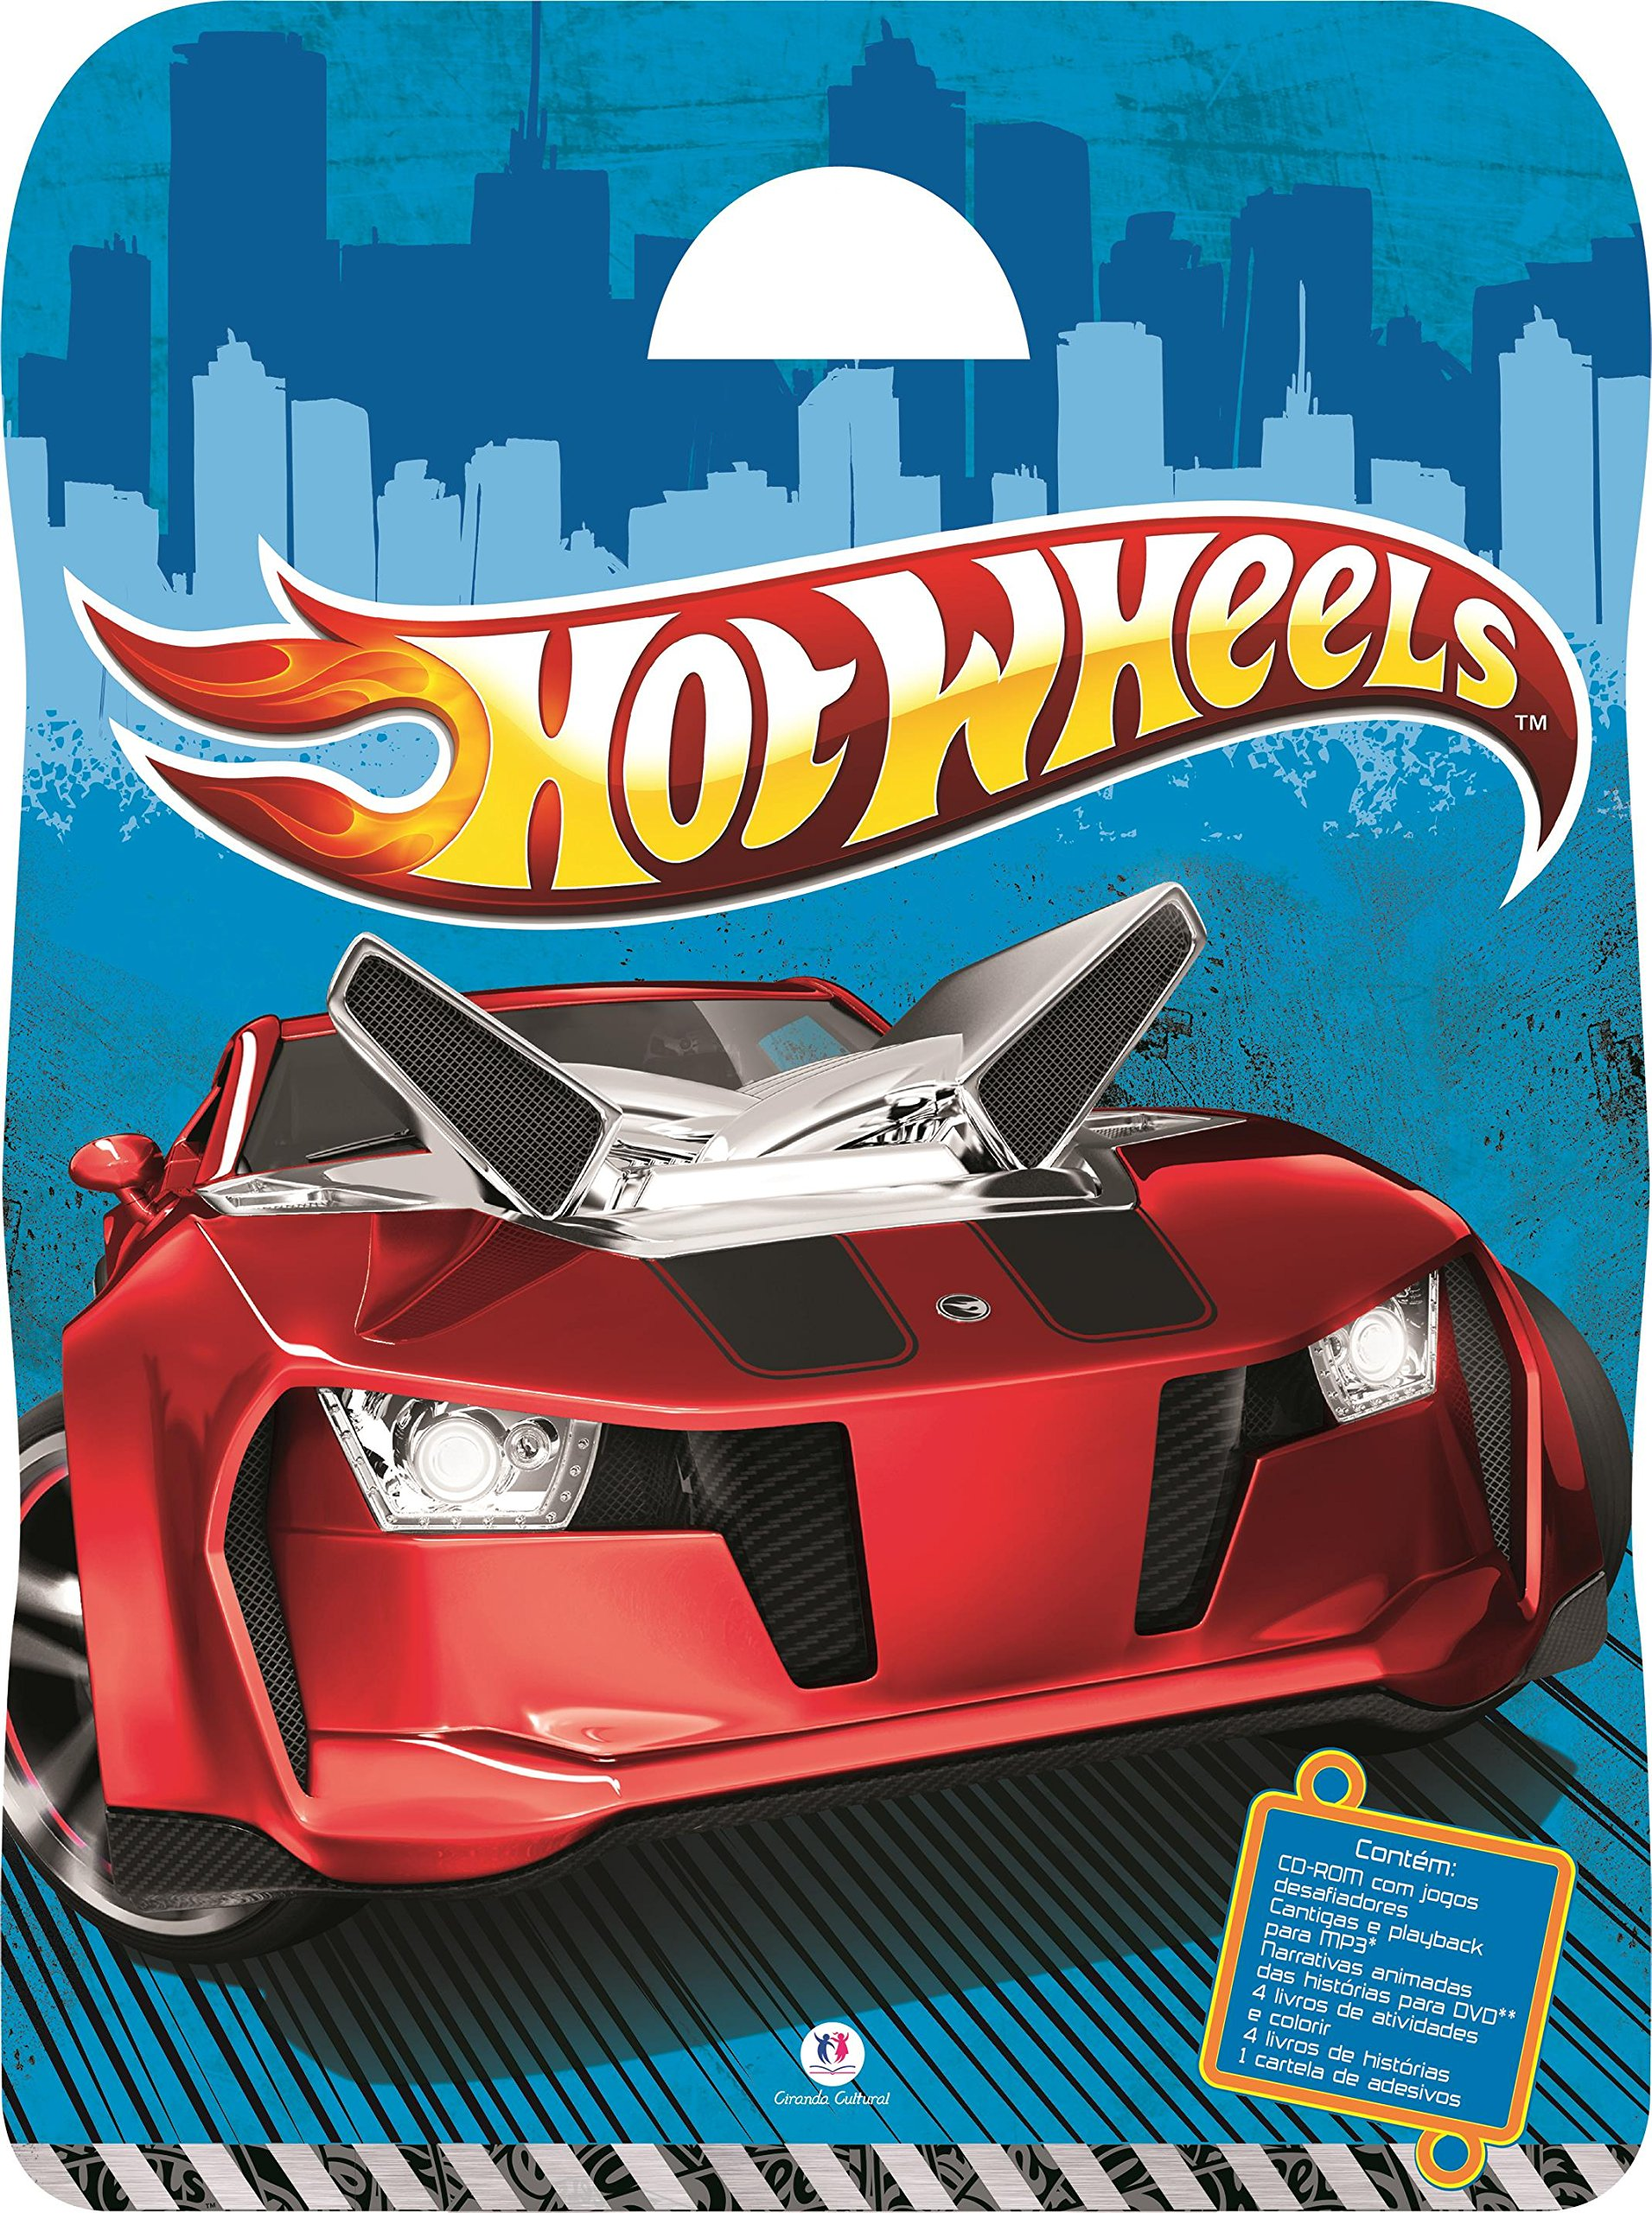 Maleta Hot Wheels (Portuguese Brazilian) Paperback – 2000